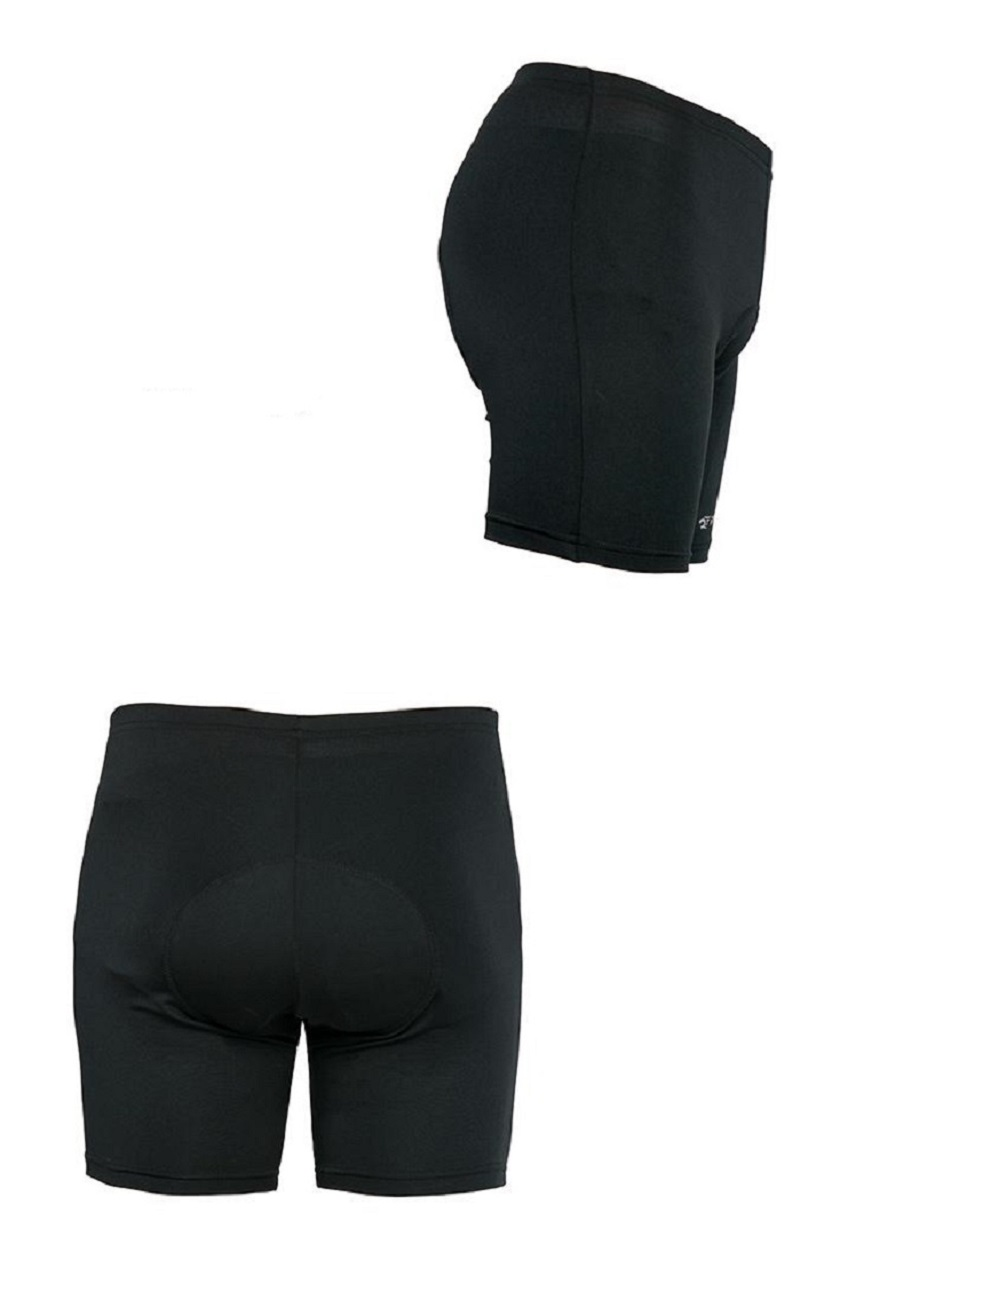 Men's Gel Padded Cycling Shorts Medium by Unbranded